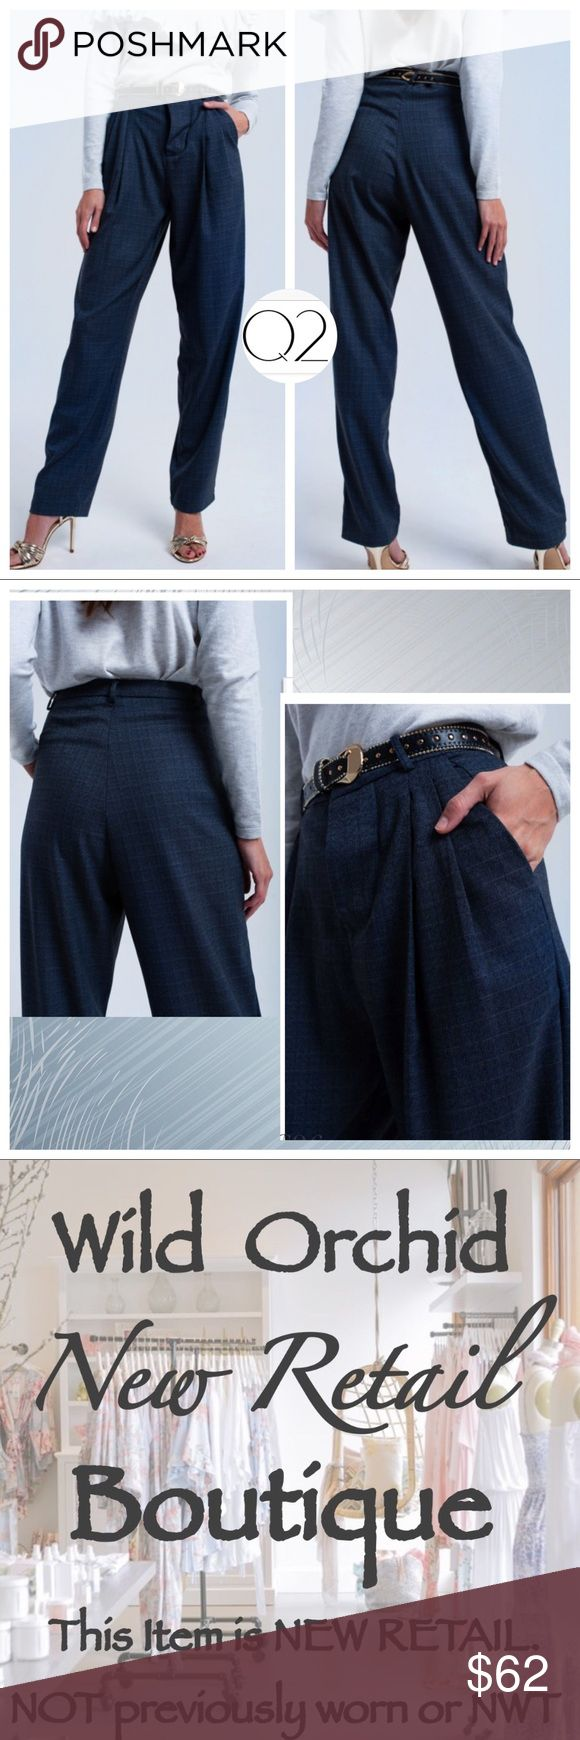 """🆕Q2 GRAY TARTAN PATTERN PANTS Gray tartan pattern pants.  •Five belt loops, two pockets and a pleated detail in the front •Concealed button closure.  •Lined •95% Polyester 5% Elasthanne Model is wearing size S. Model is: 33-24-35. Height: 5'8''. Rise: High Waist. Inseam: 32"""" Waist Flat Across:  14"""" Recommended Retail Price: 79.90 $  Boutique pieces at discounted prices. Don't let yourself get price gouged. I have the same pieces you'll see elsewhere. I just don't feel the need for greed :)…"""